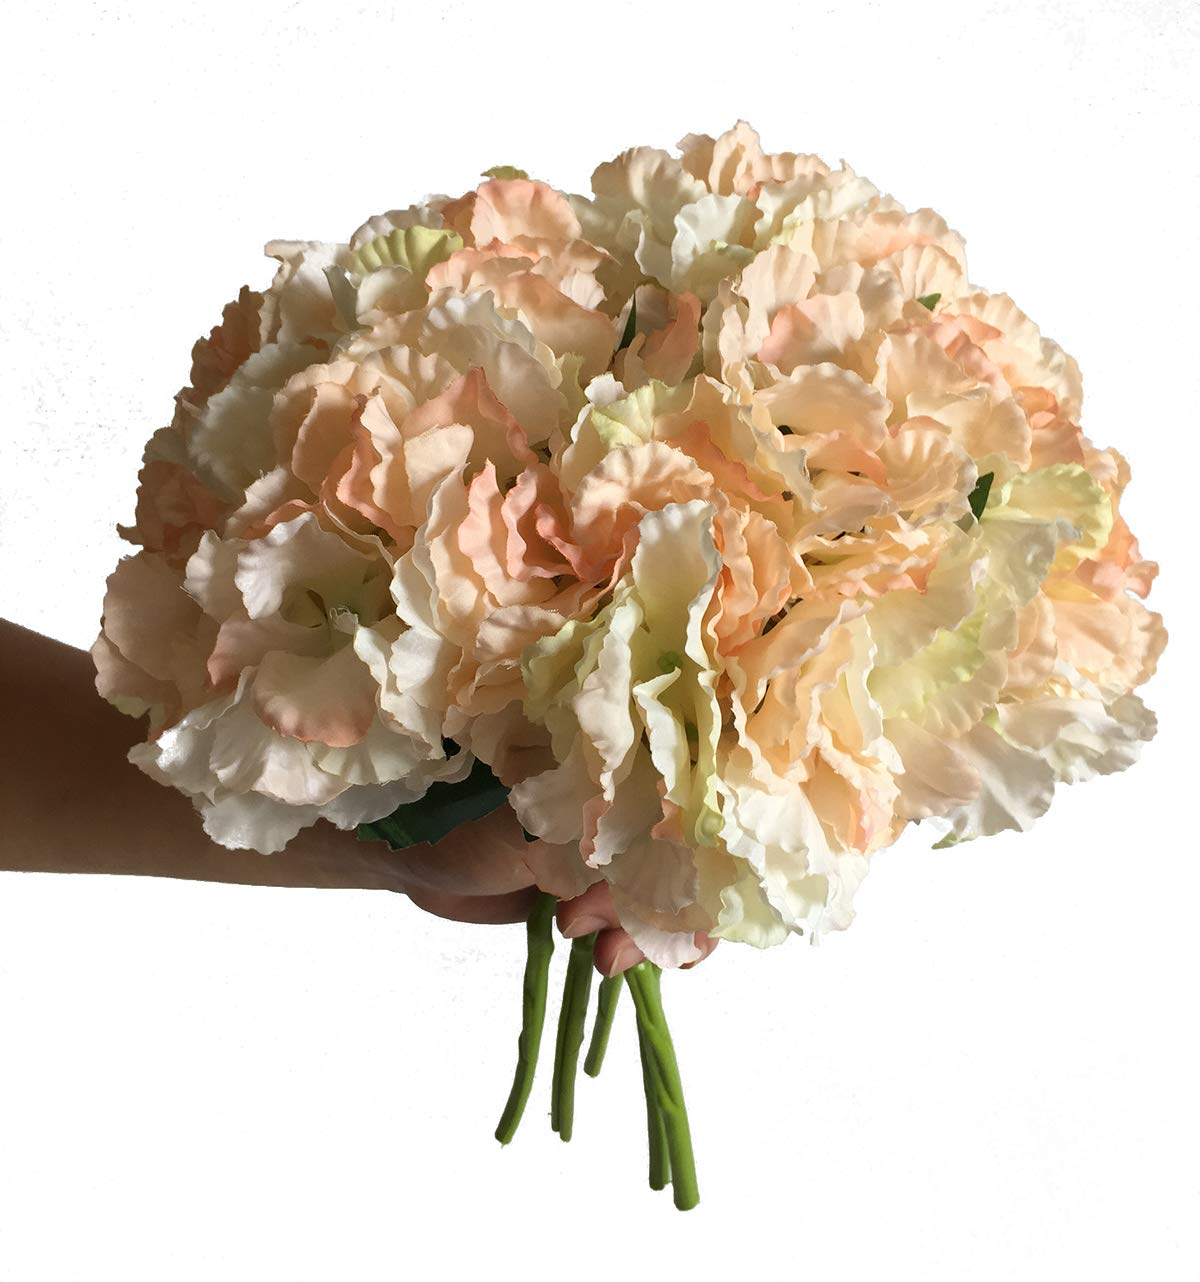 Artfen 5 Pack Artificial Hydrangea Flowers Fake Silk Bouquet Flower Home Hotel Wedding Party Decor Approx 14'' High Champagne